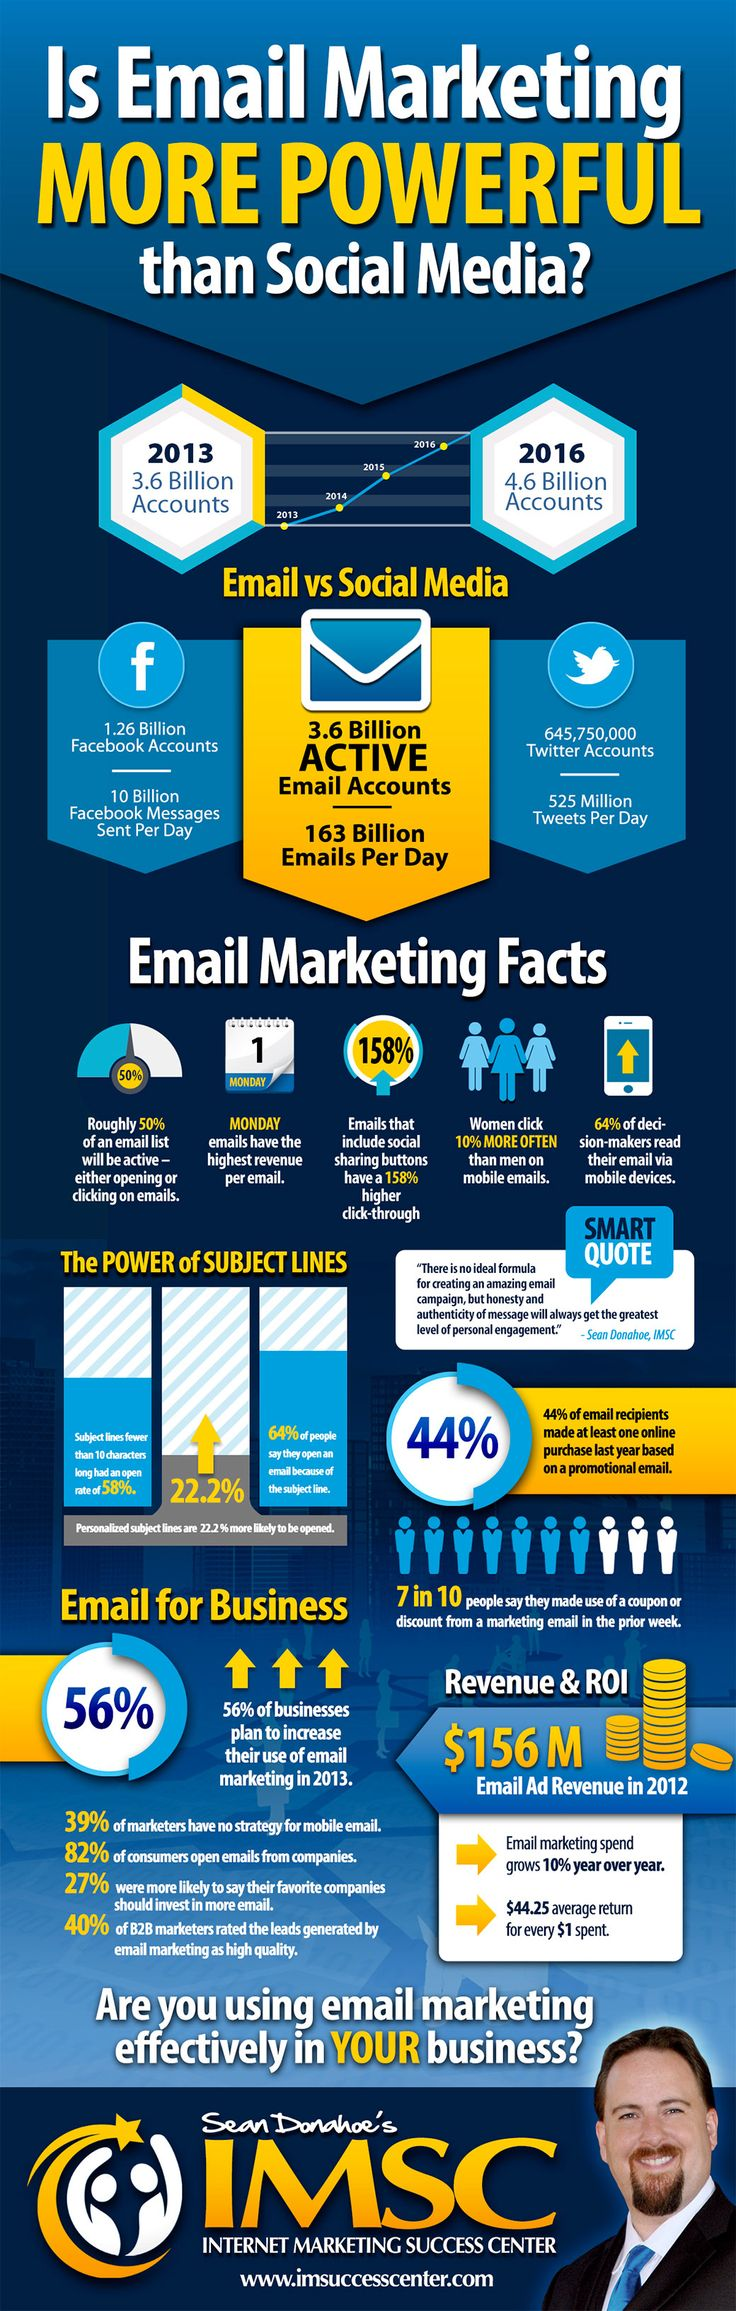 Is Email Marketing More Powerful than Social Media Marketing?  Discover how email marketing can be one of the most powerful ways to boost your profits with this powerful infographic...